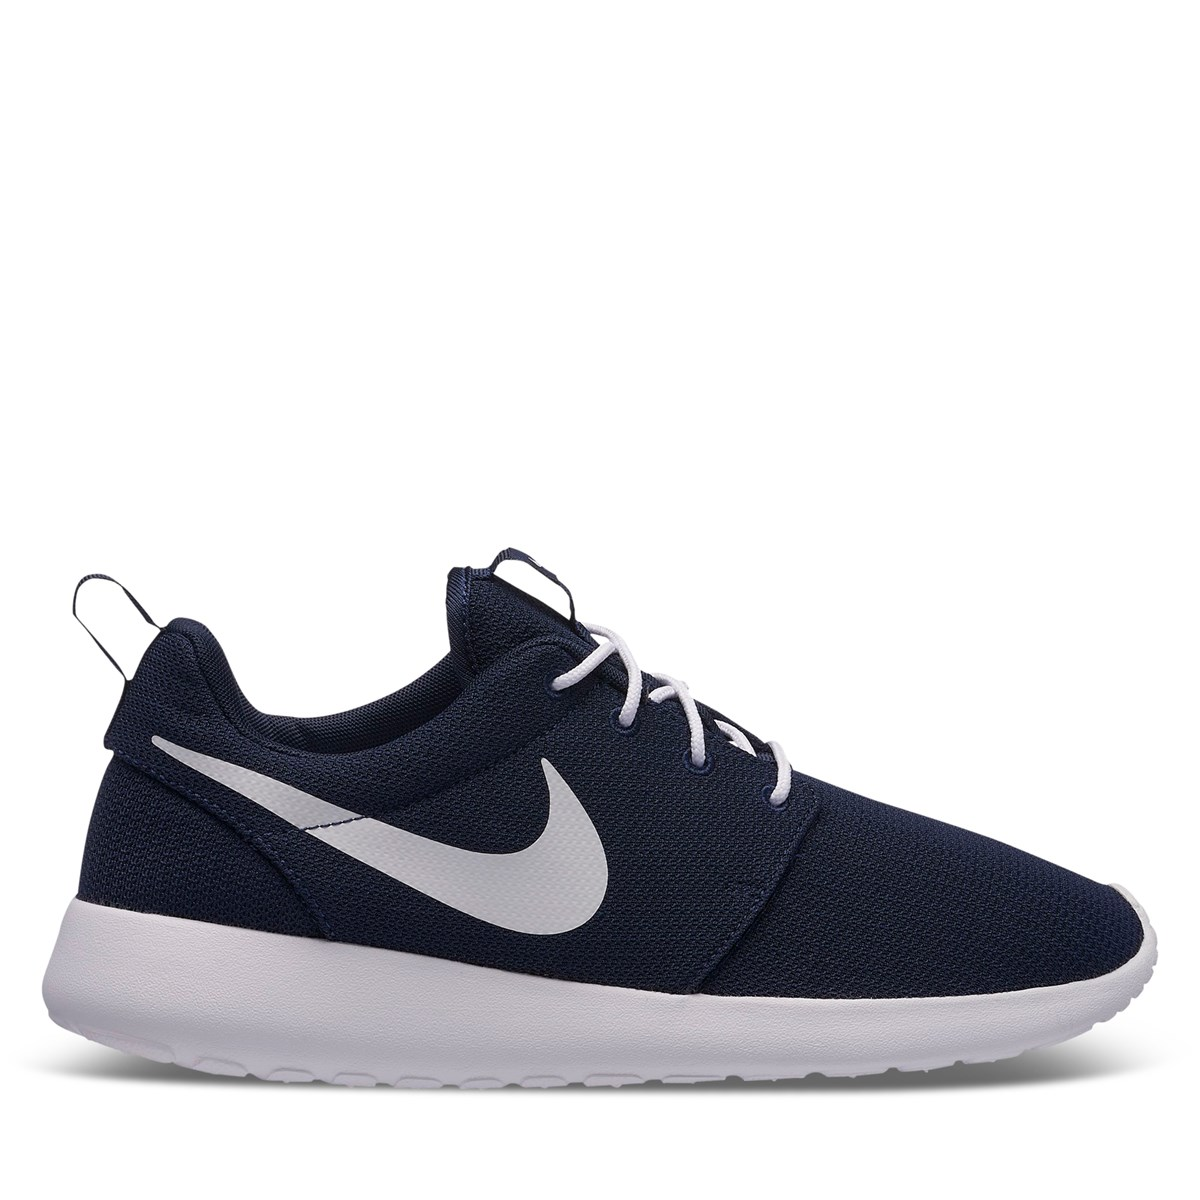 Baskets Roshe One marine pour hommes